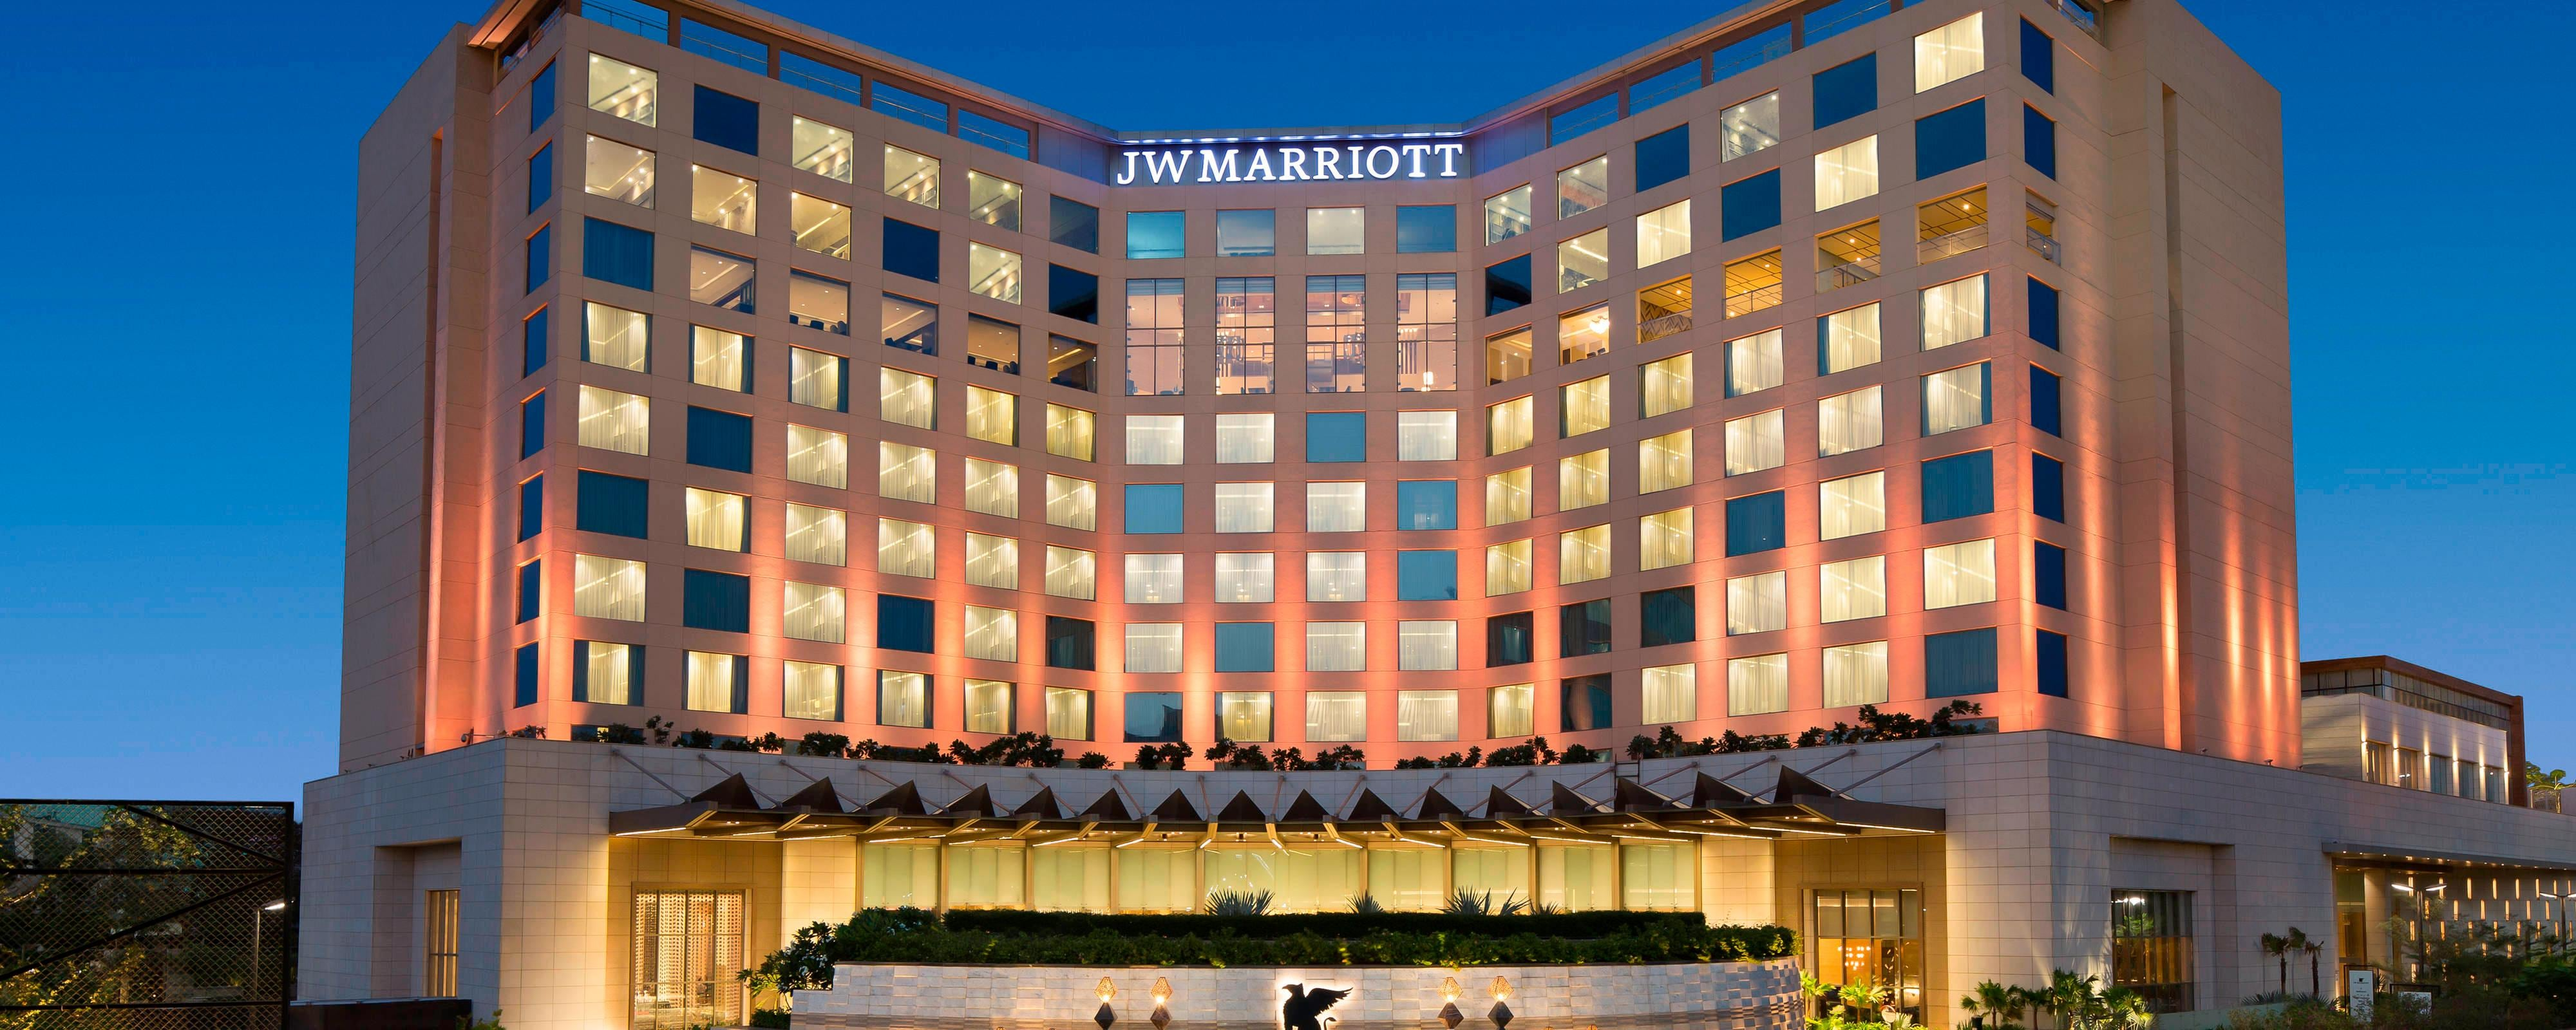 Hotel Near Dubai International Airport (DXB) | JW Marriott